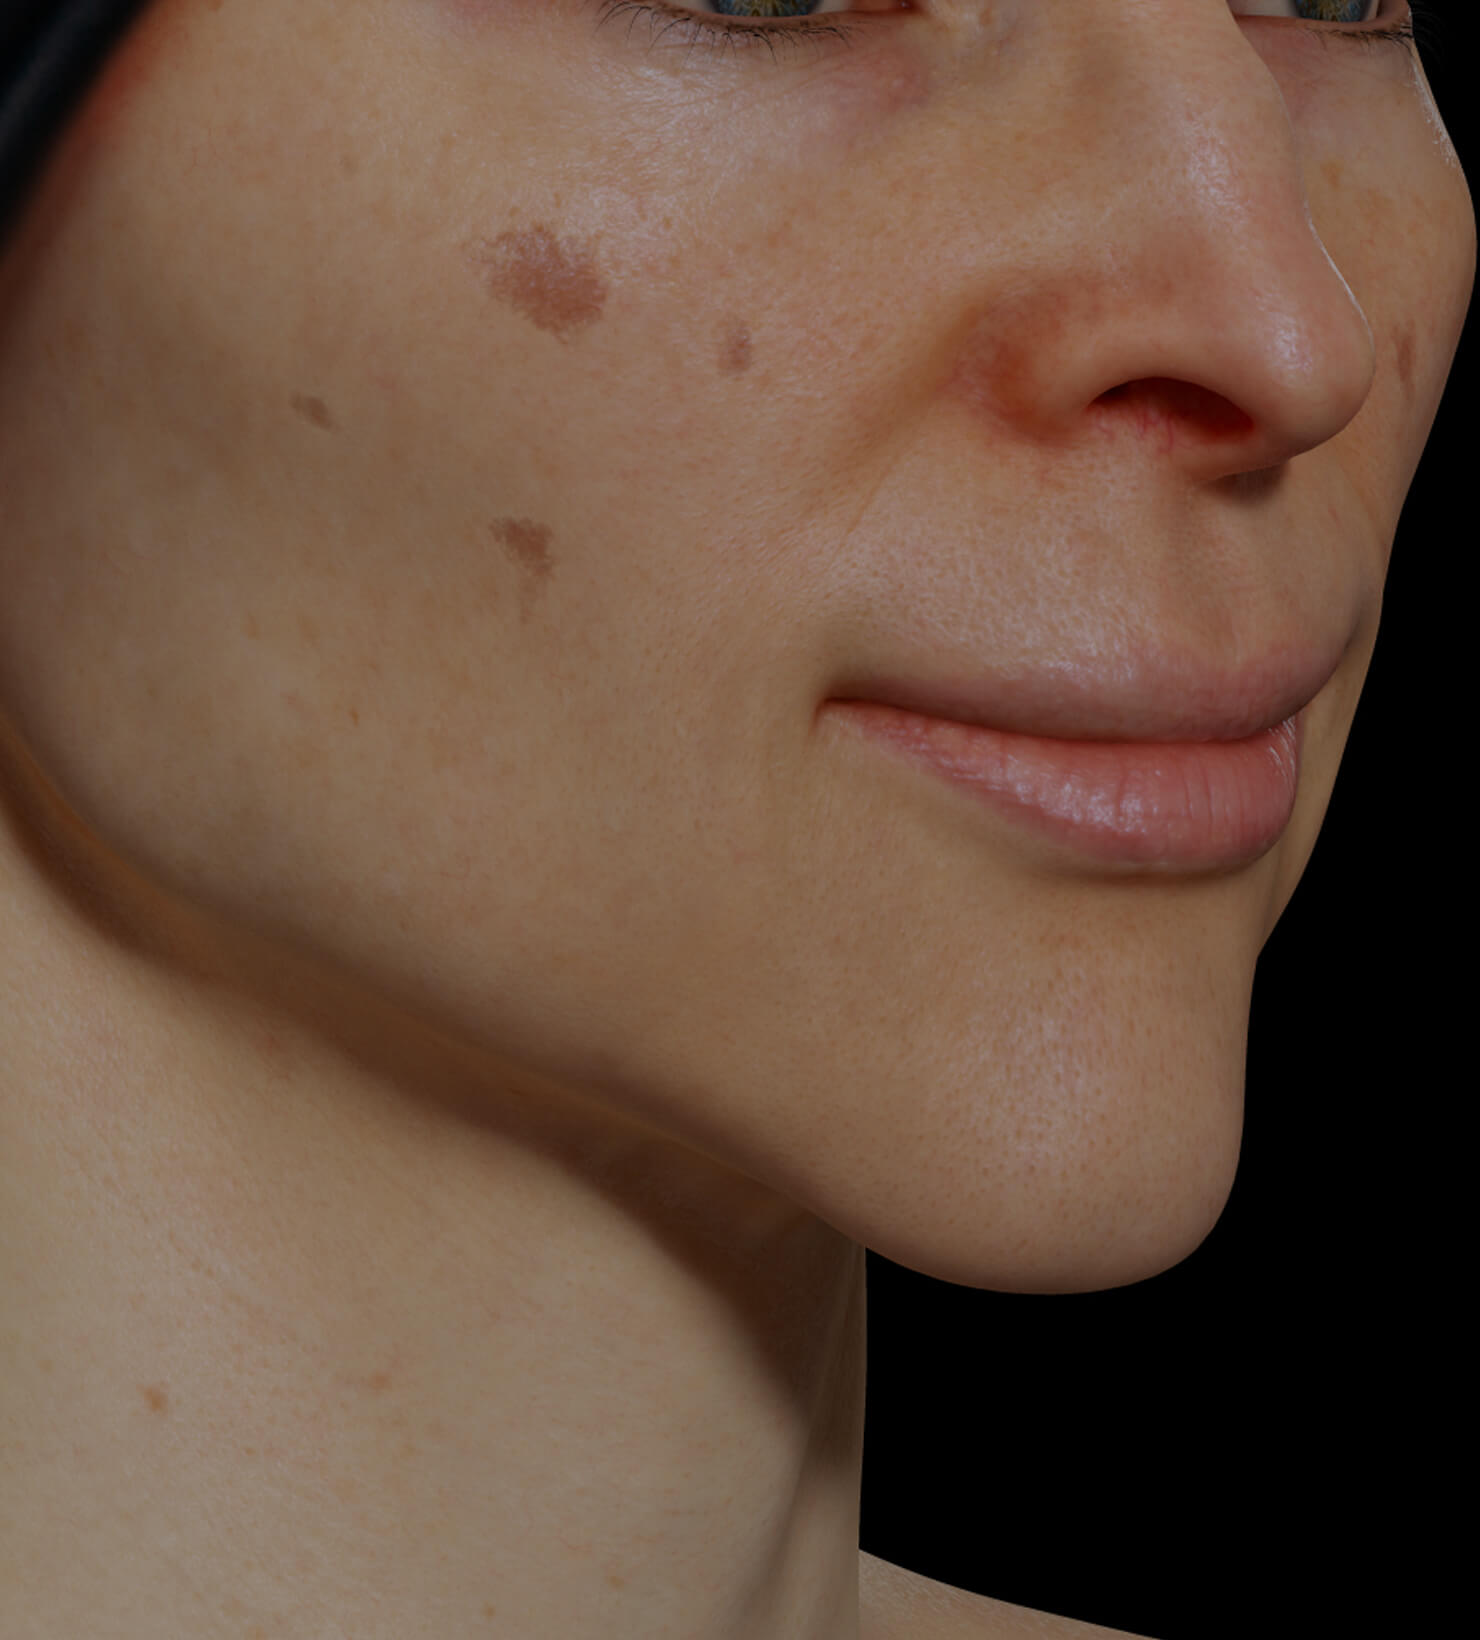 Clinique Chloé female patient with pigmented lesions, or dark spots, on the face getting treated with microneedling